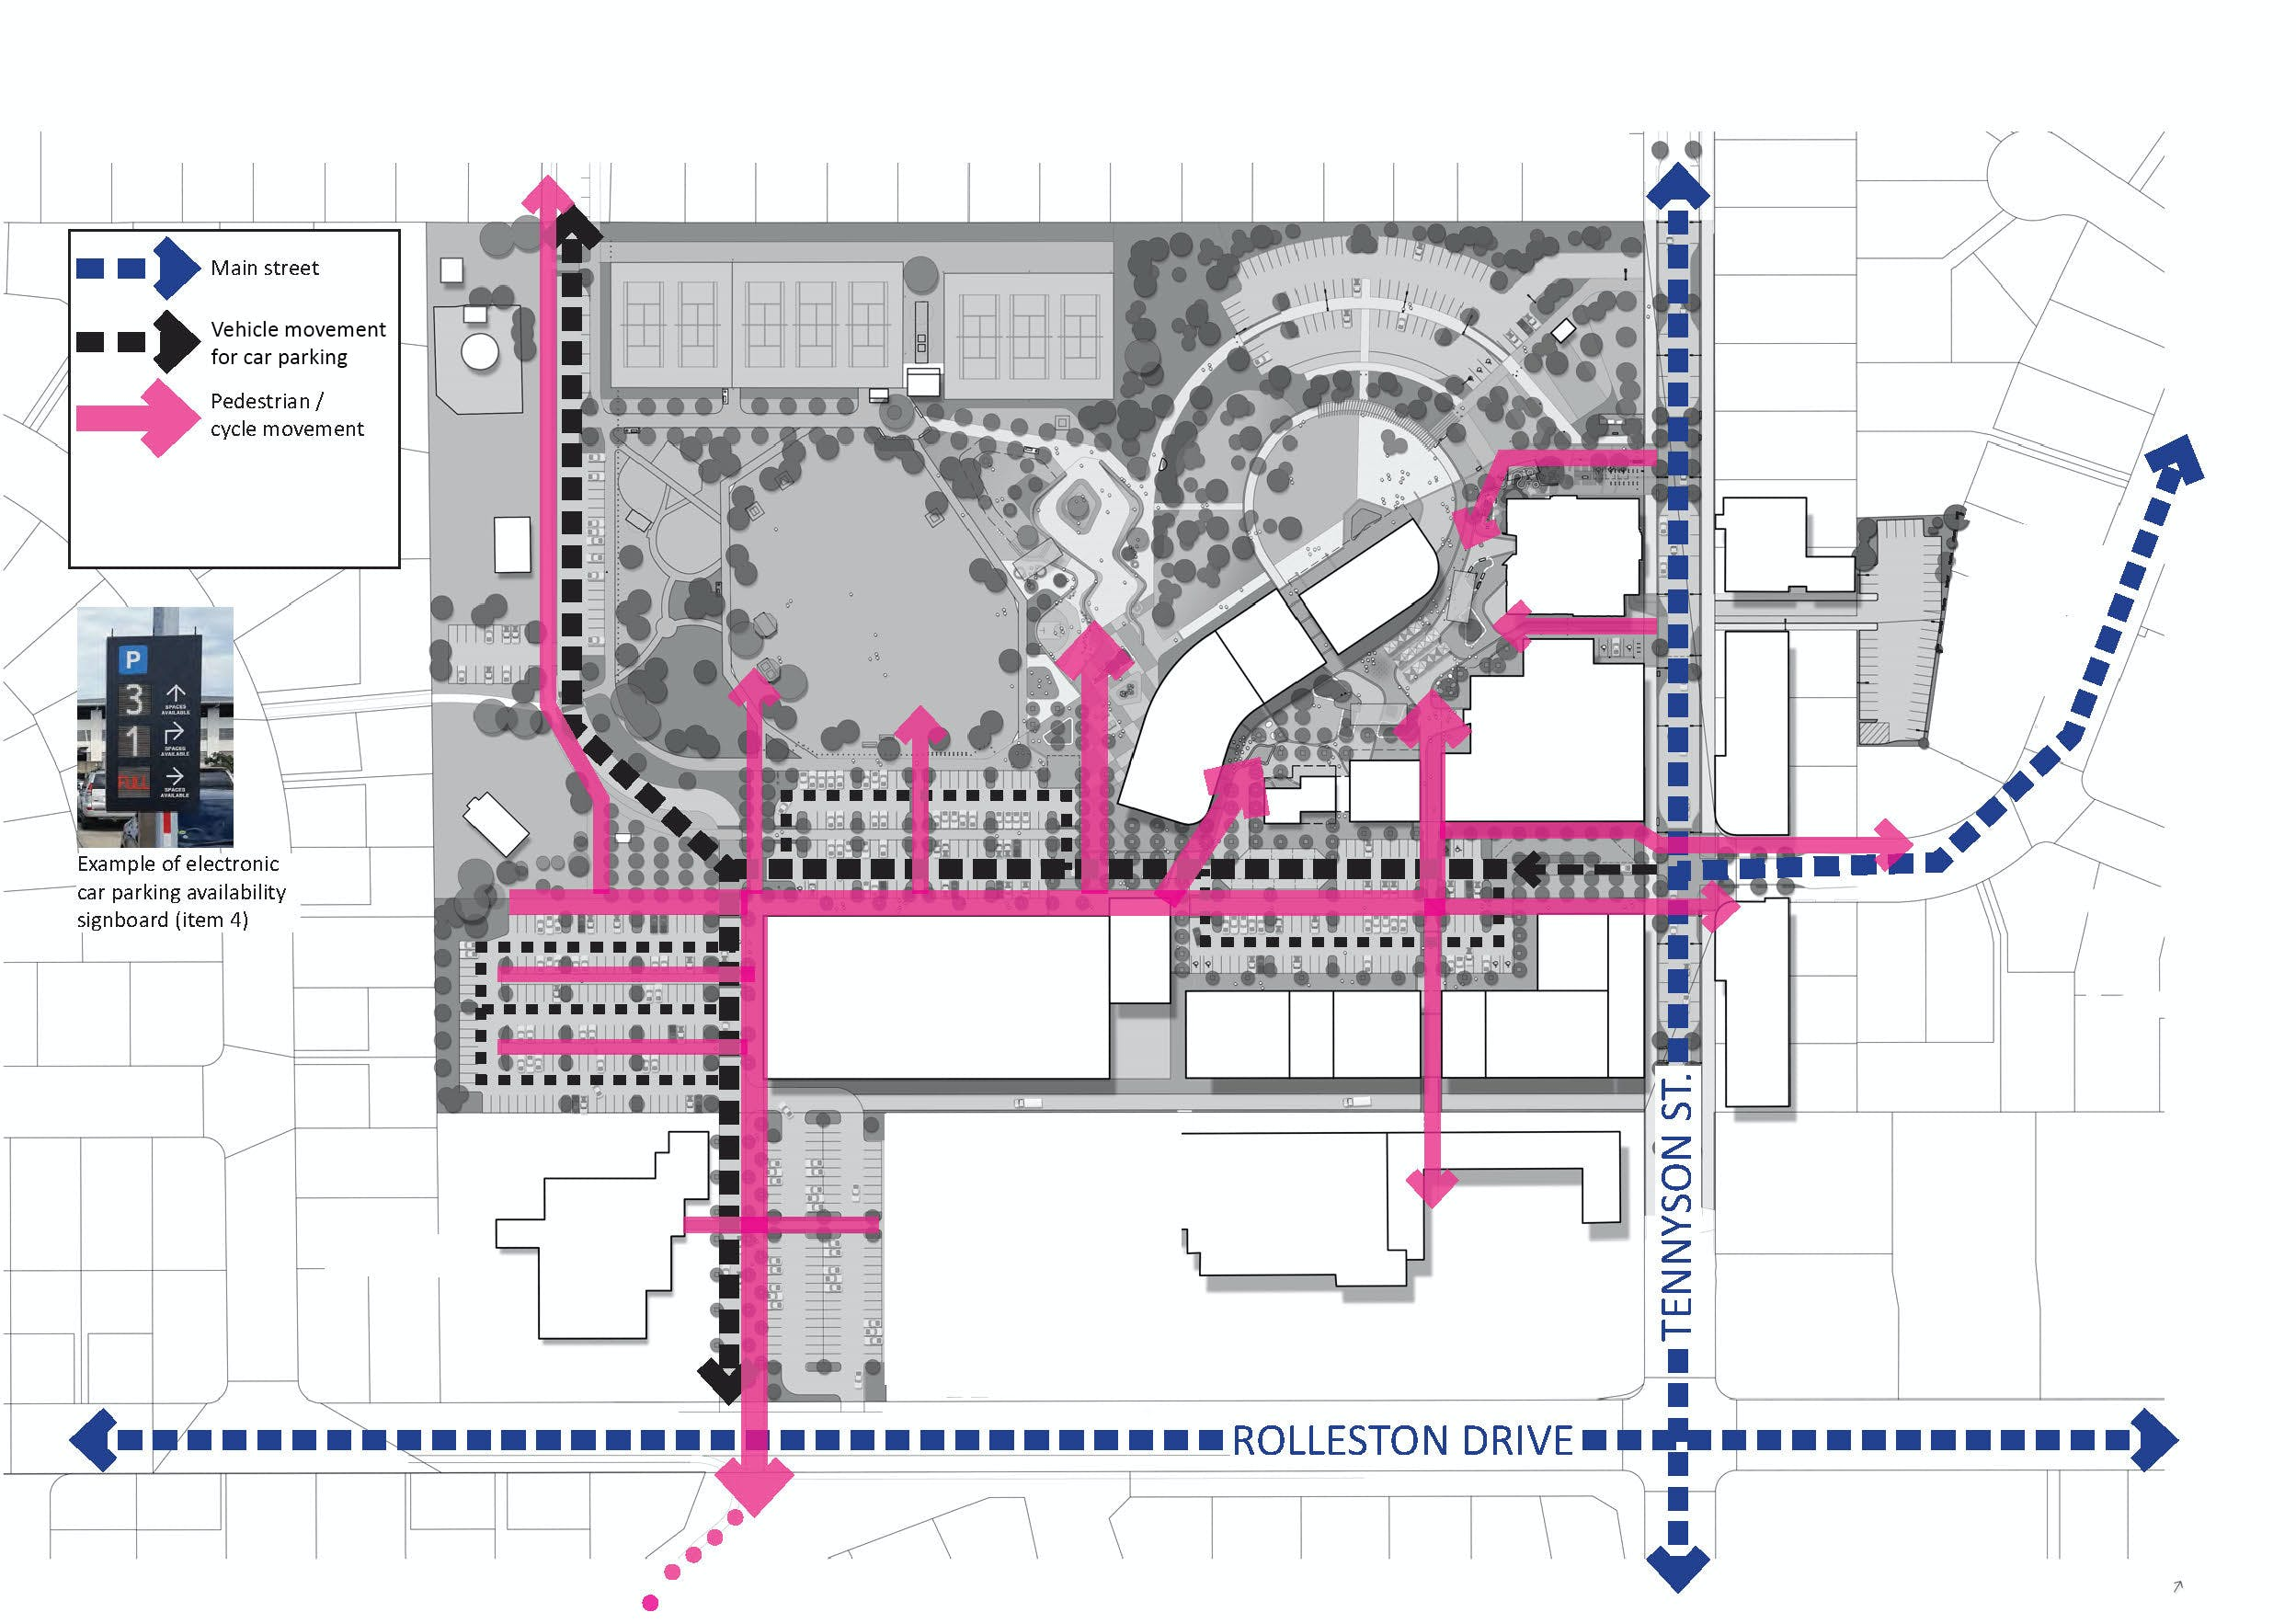 Outline of proposed pedestrian and vehicle movement within the town centre.